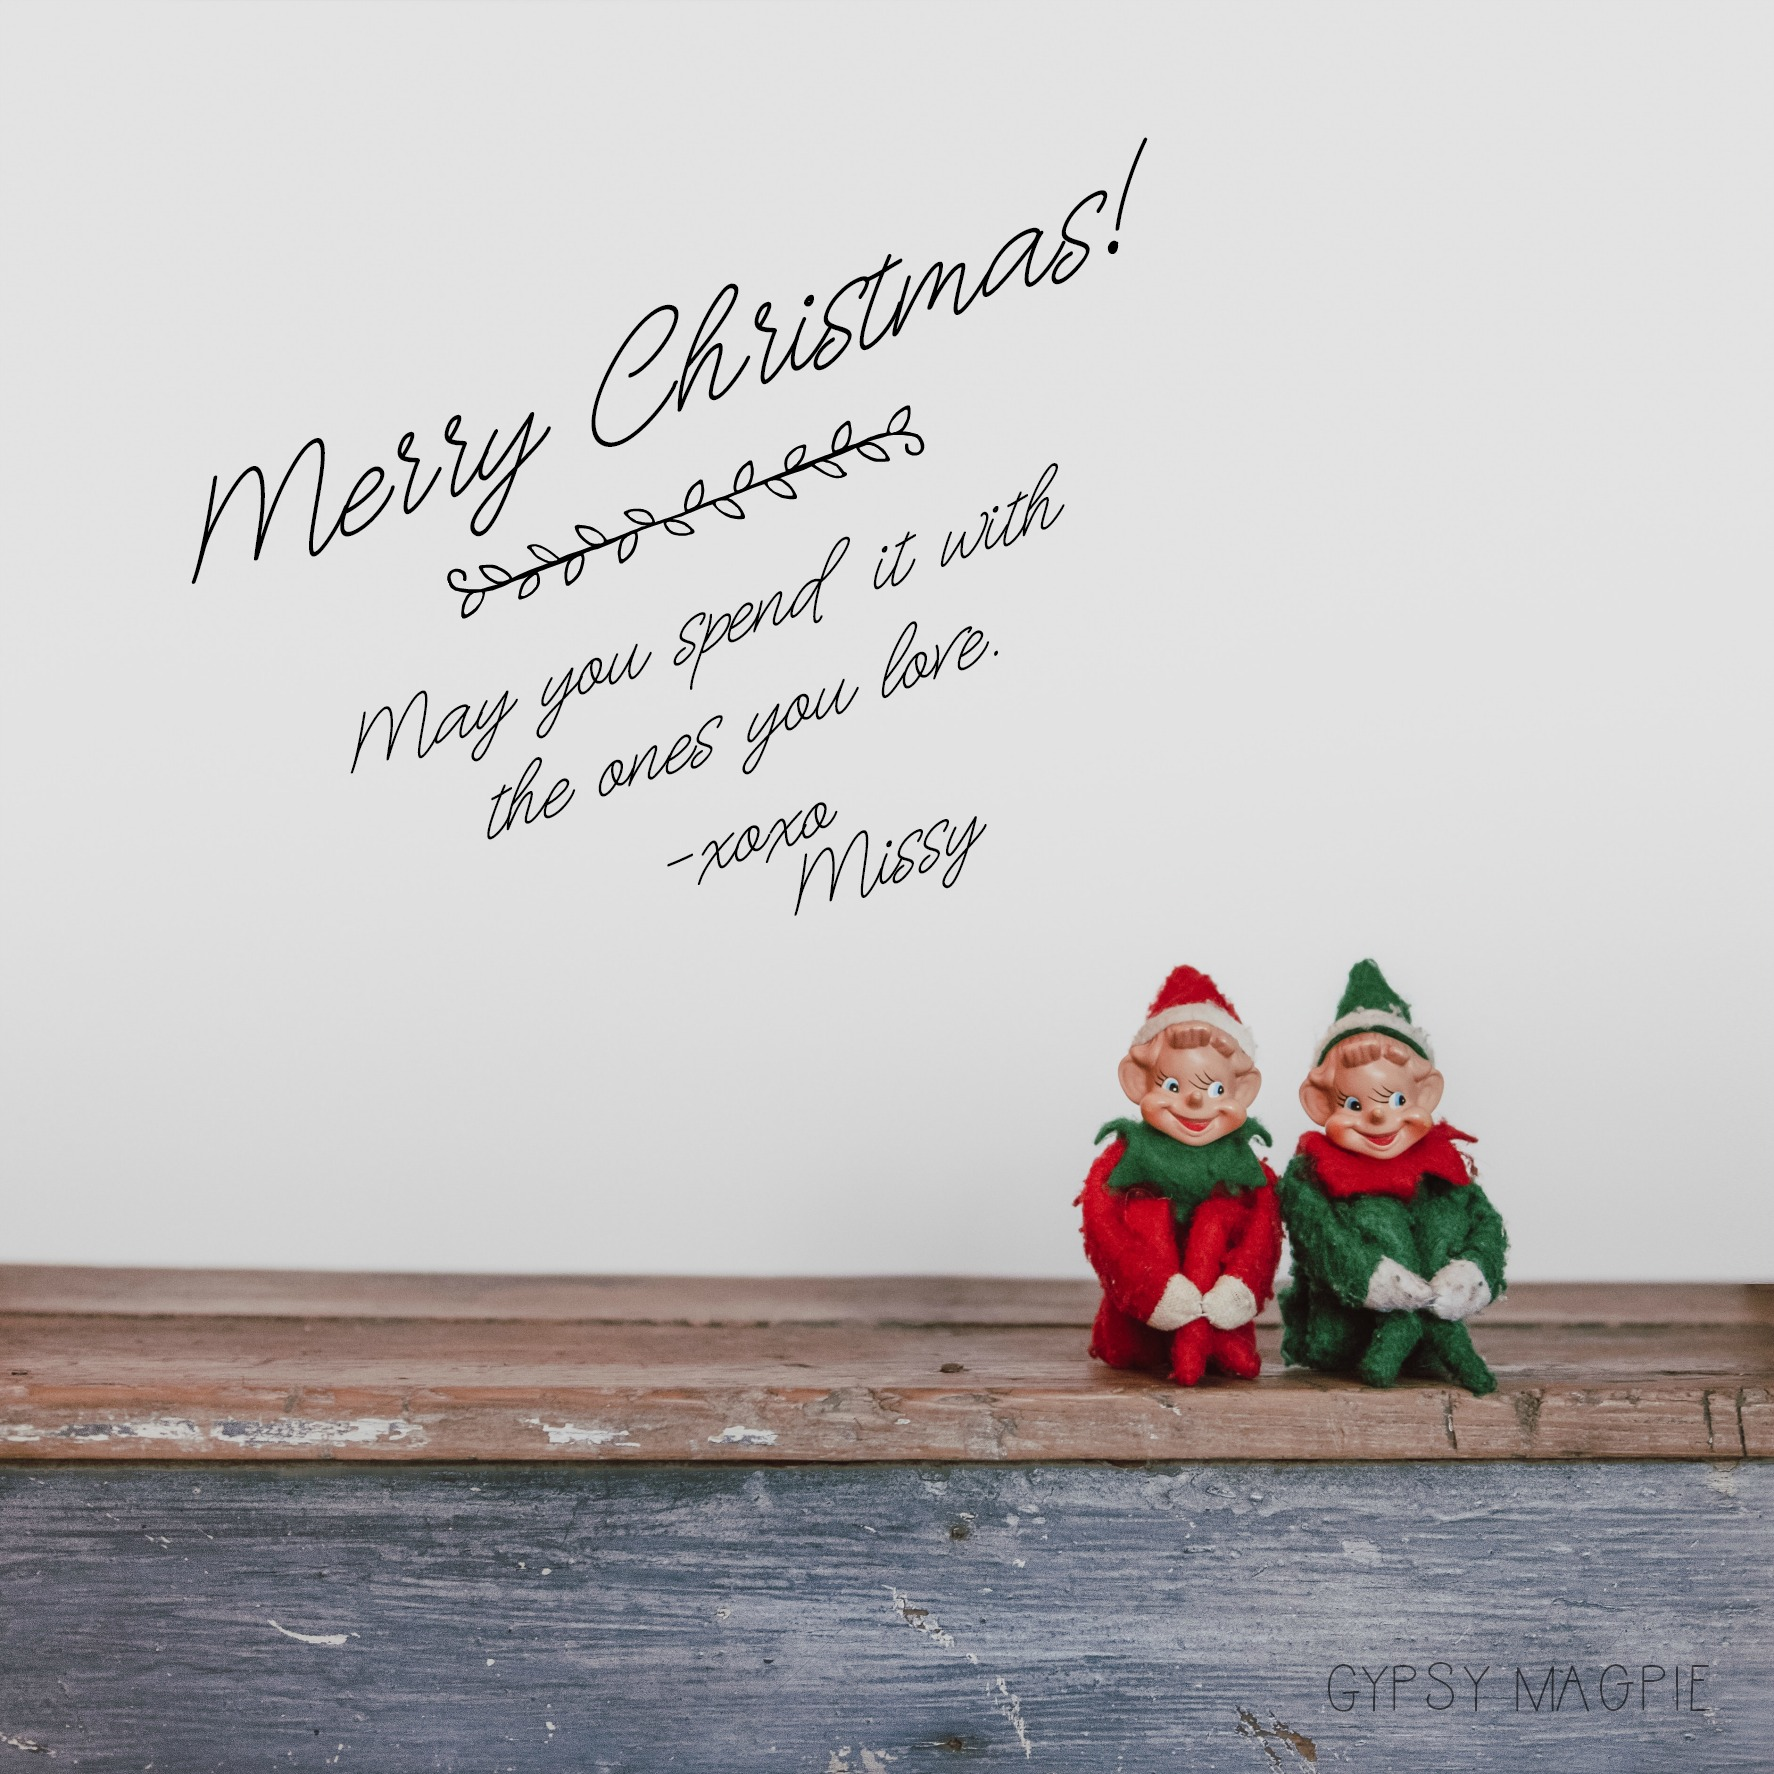 Wishing you a meaningful Christmas and a fabulous New Year!